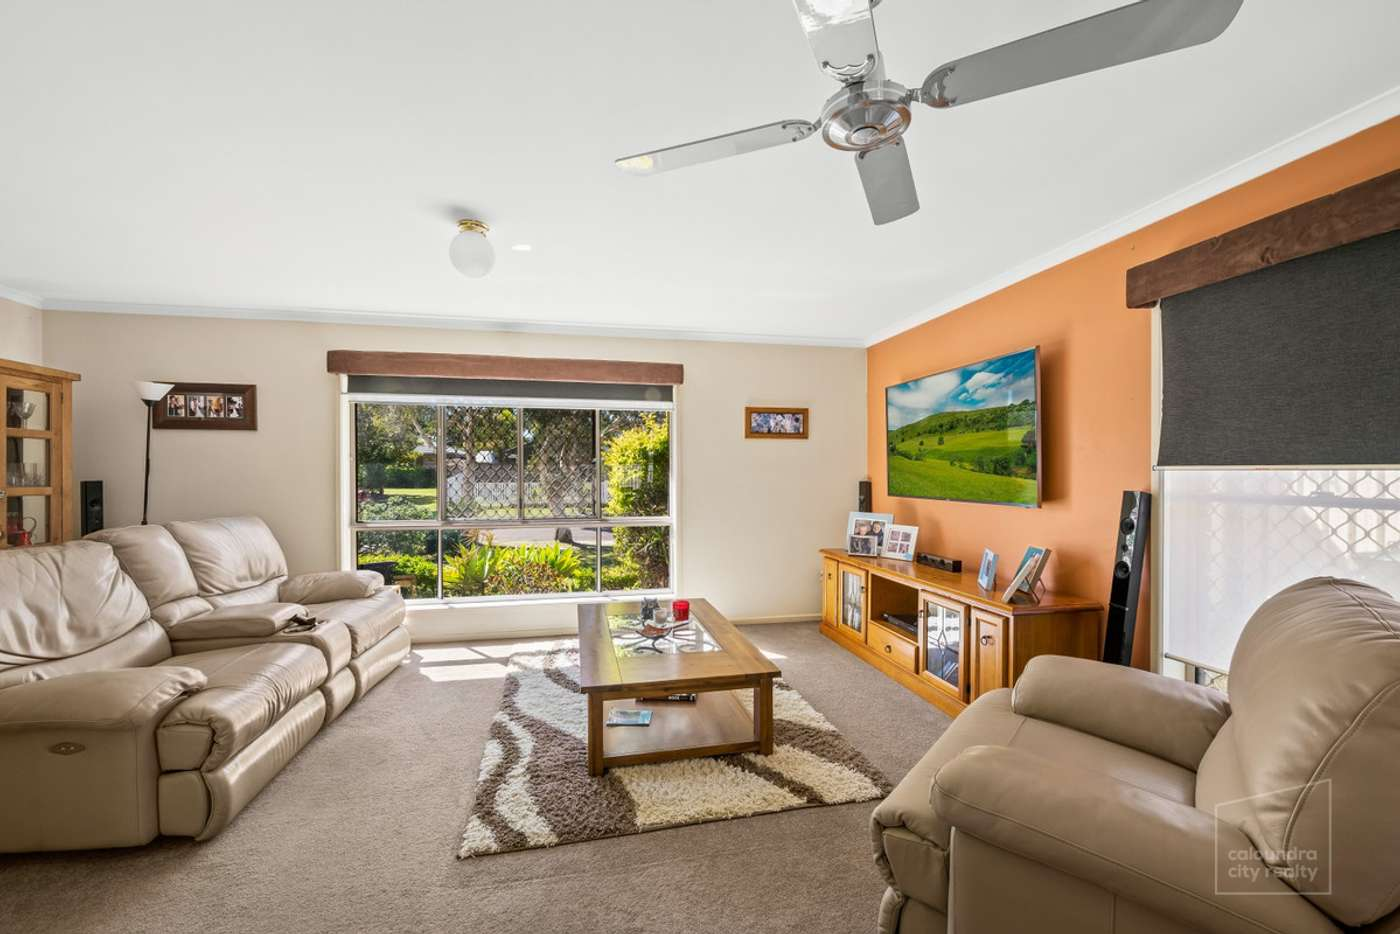 Seventh view of Homely house listing, 4 Marigold Court, Currimundi QLD 4551